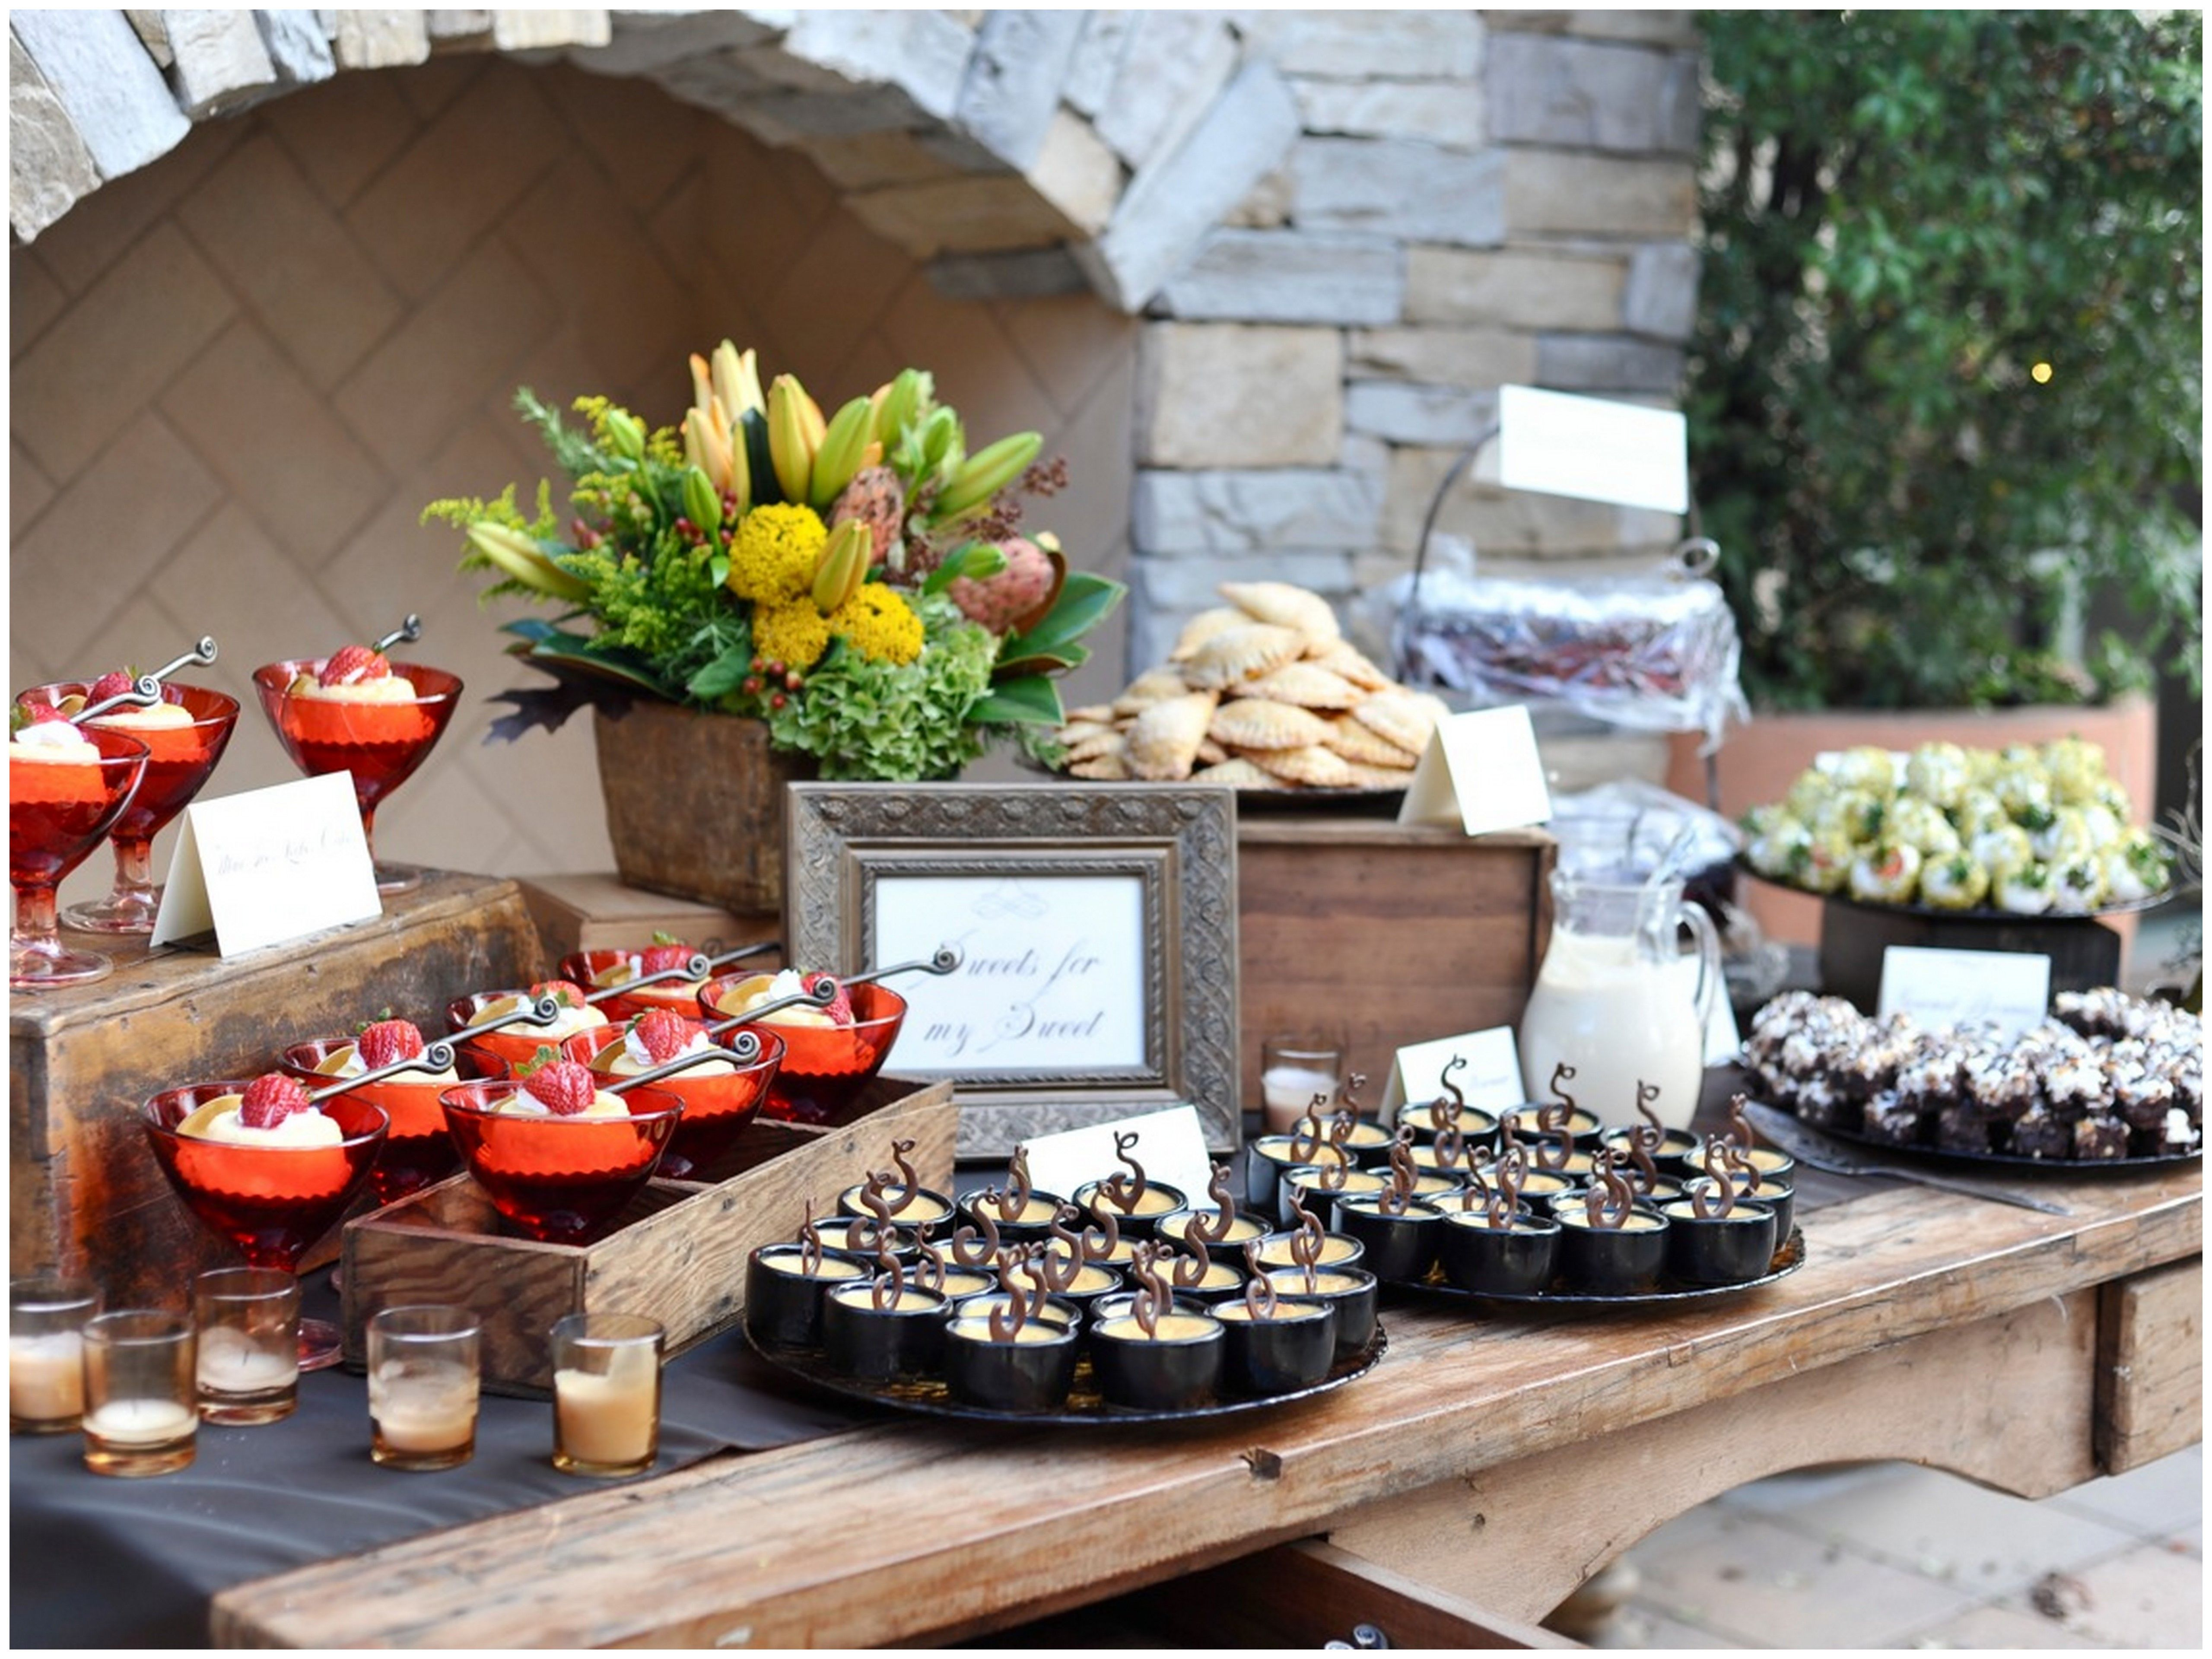 Dessert stations catering chronicles food for thought - Desserte table cuisine ...